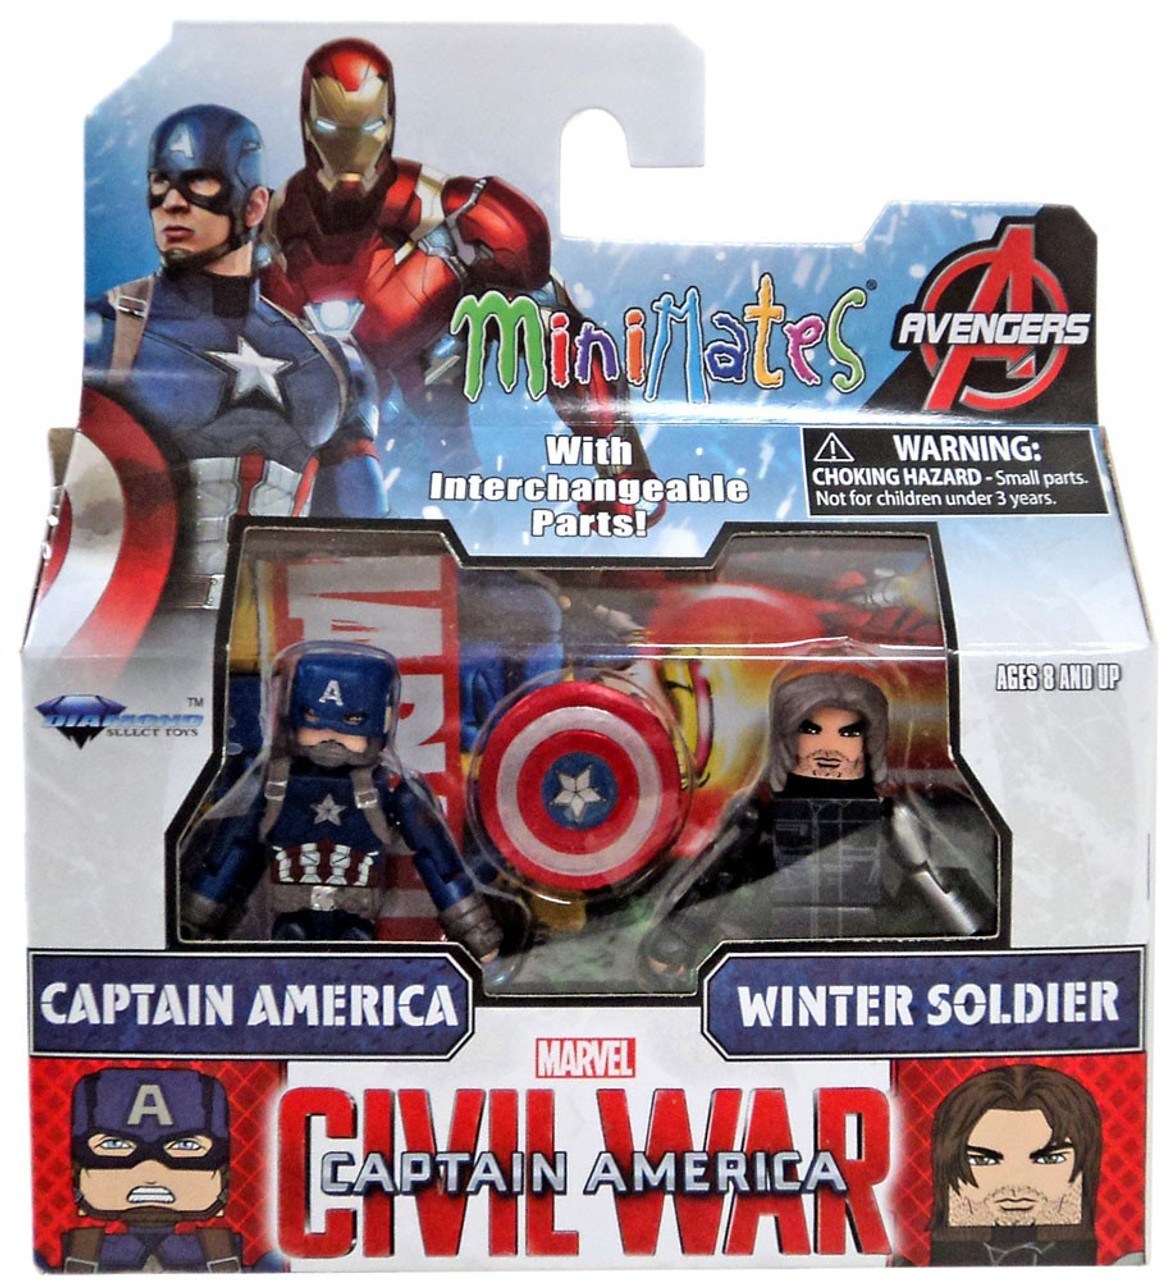 Roblox Winter Soldier Shirt Marvel Captain America Civil War Minimates Captain America Winter Soldier Minifigure 2 Pack Diamond Select Toys Toywiz